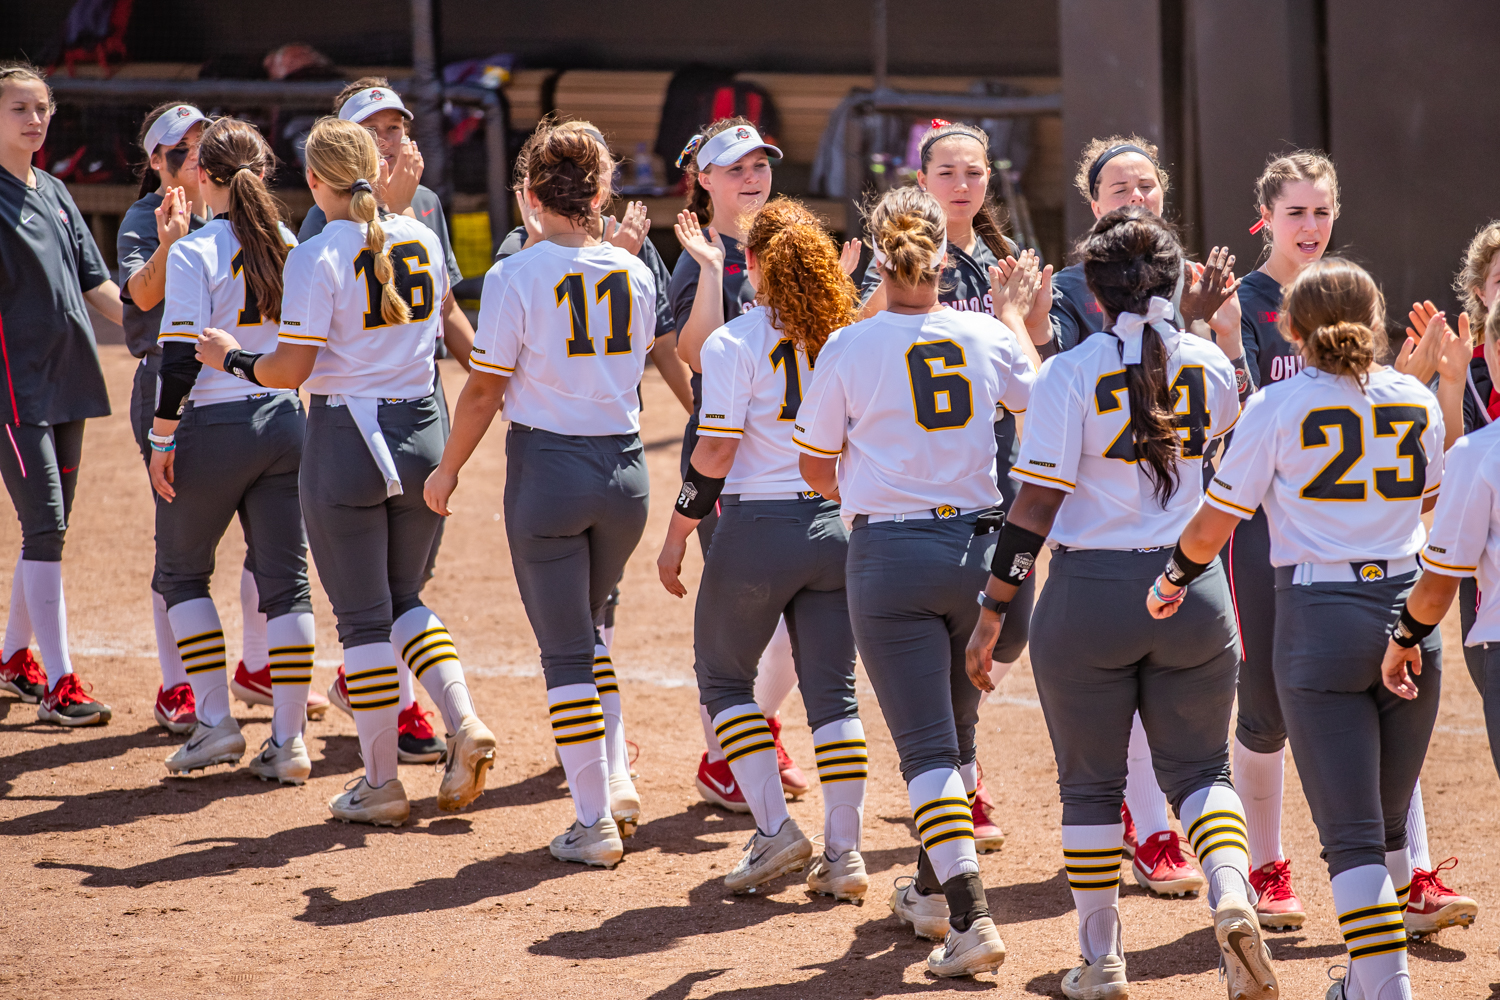 Players line up after a softball game between Iowa and Ohio State at Bob Pearl Field on Sunday, May 5, 2019. The Hawkeyes, celebrating senior day, fell to the Buckeyes, 5-0.